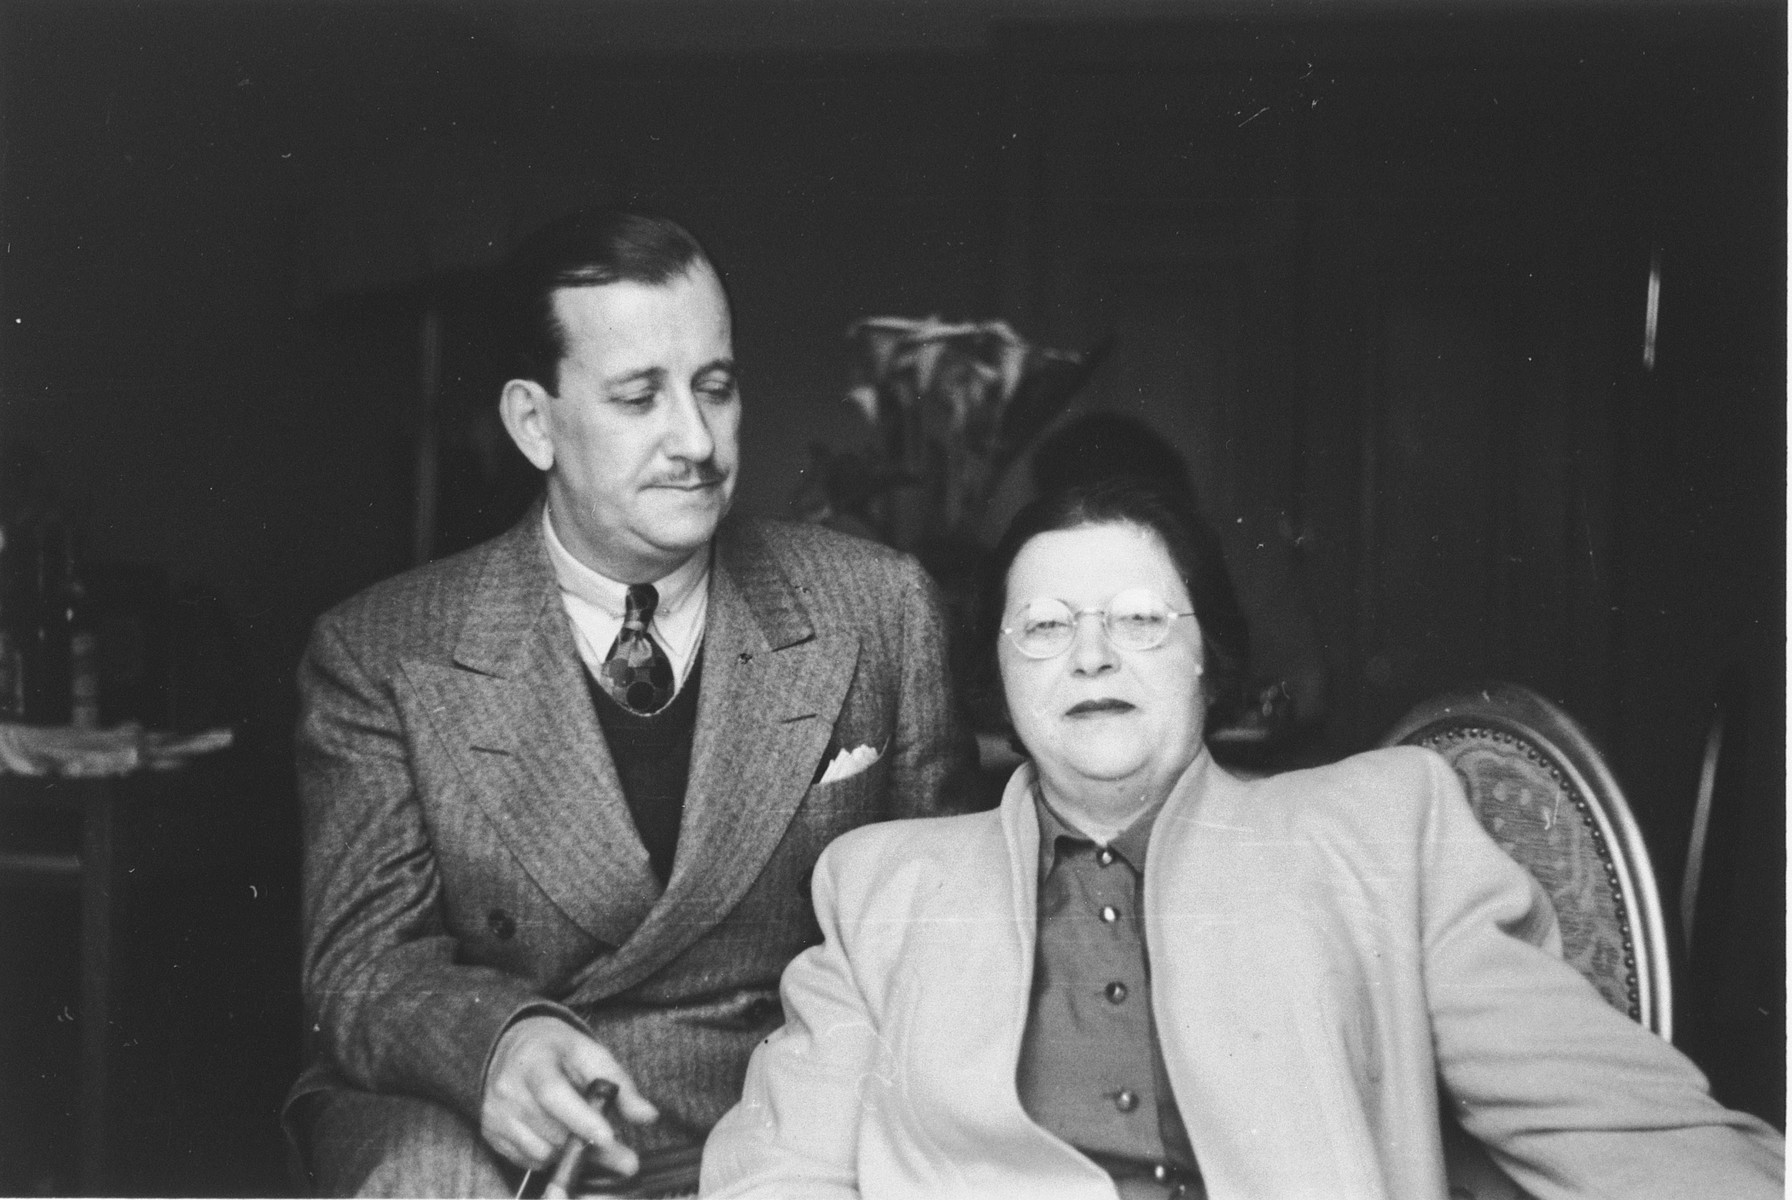 JDC executive Morris Troper and his wife at the European headquarters of the American Joint Distribution Committee in Lisbon.